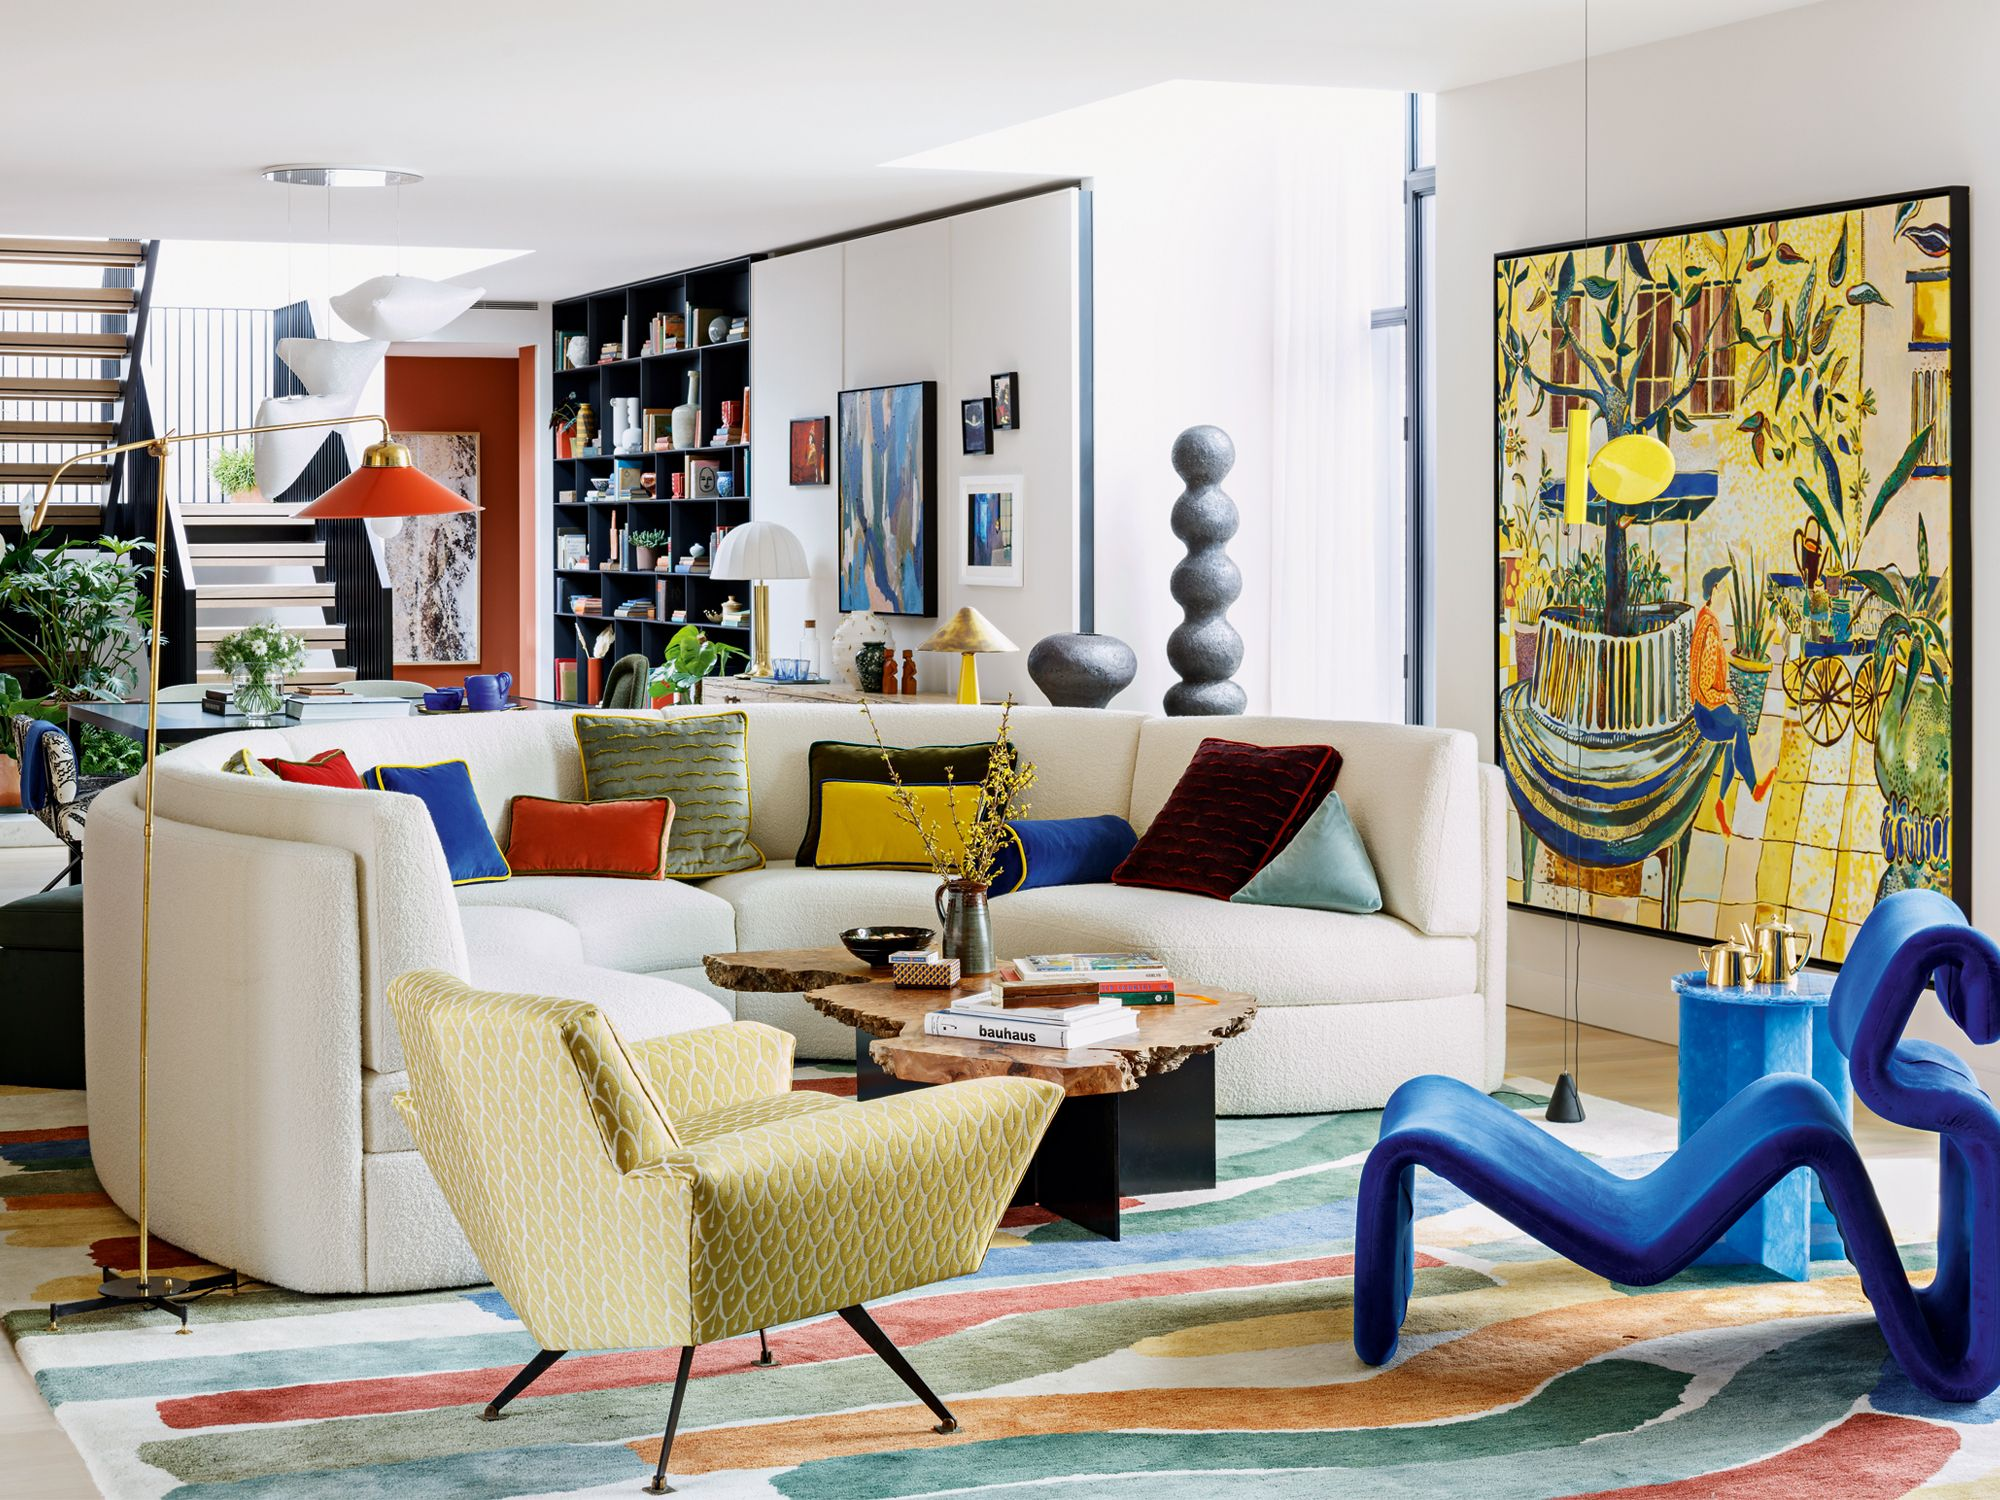 A colourful private residence in London named Floral Court, designed by Studio Ashby (Image: Philip Durrant, courtesy of Studio Ashby)